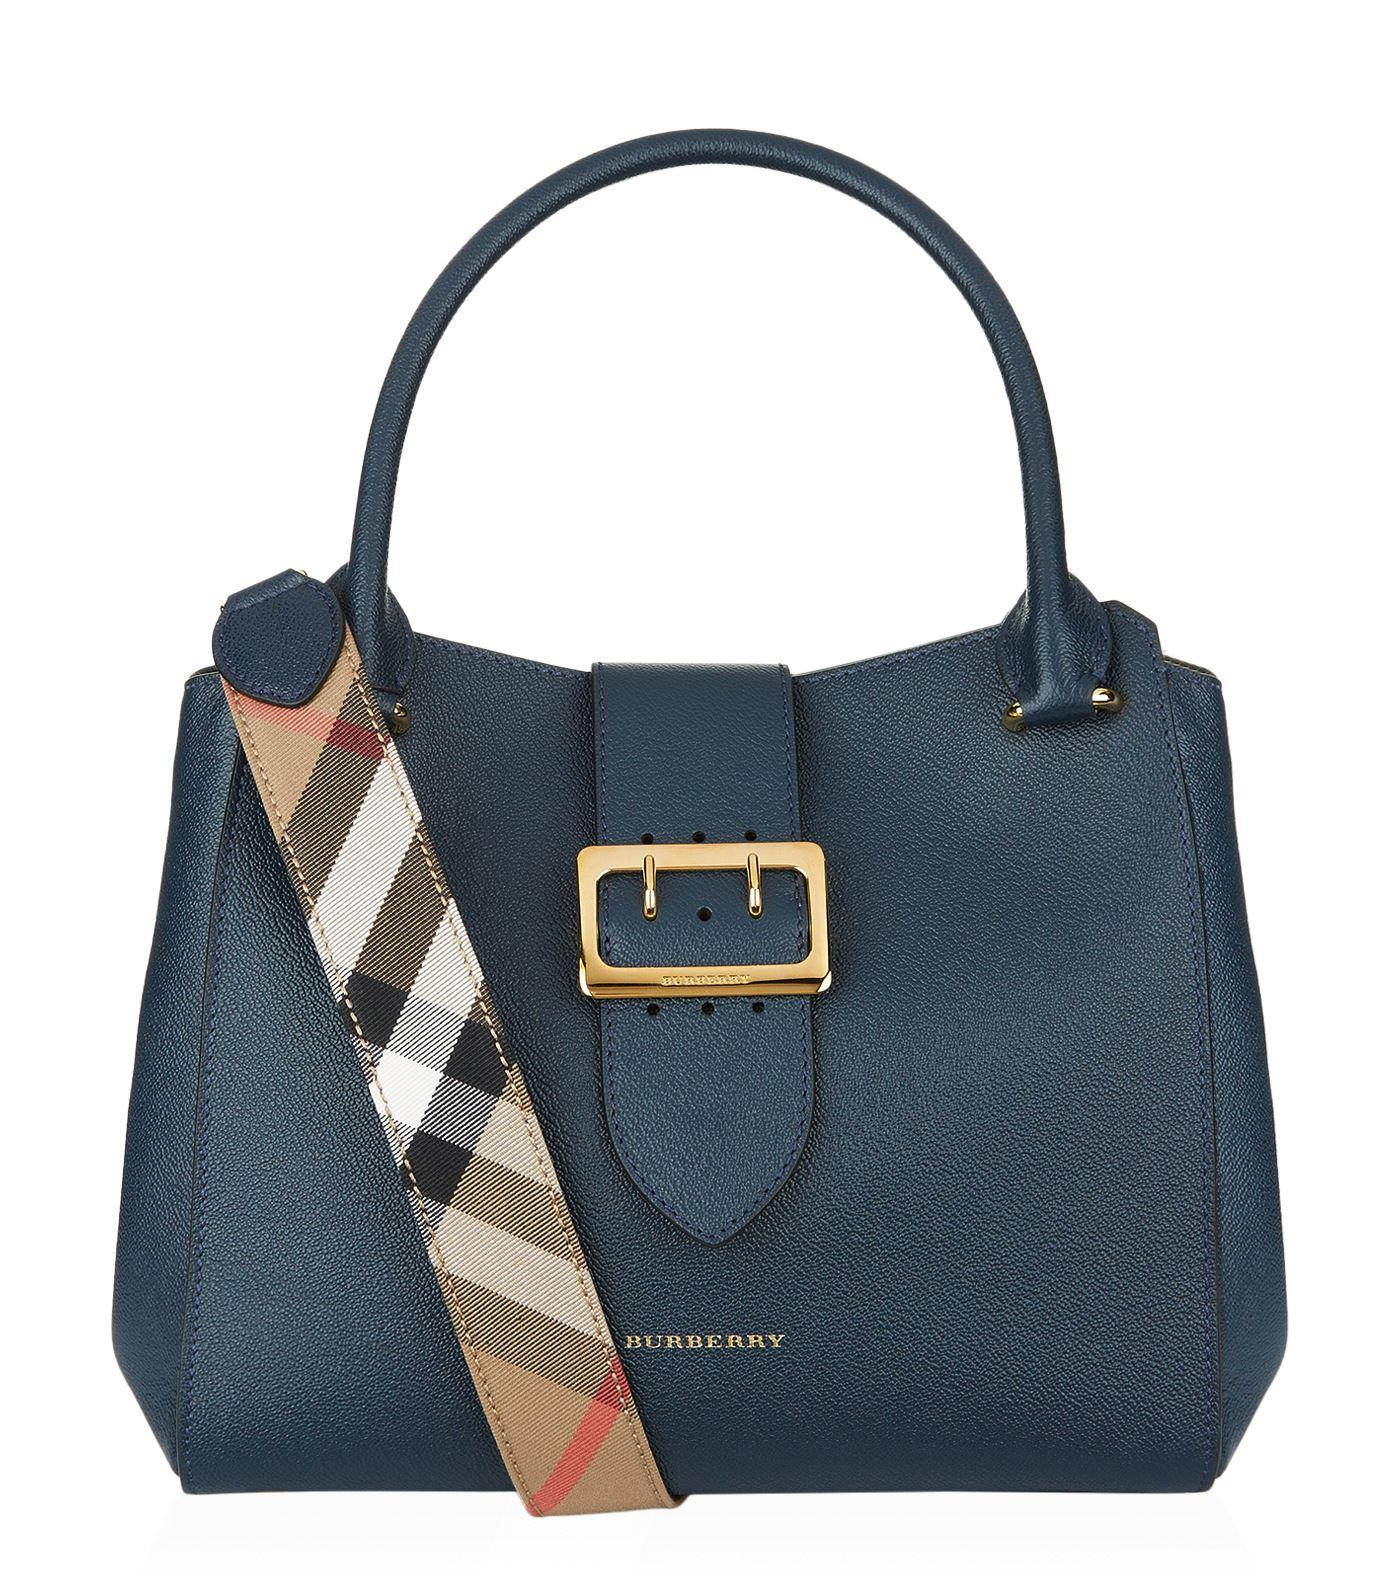 Burberry Buckle Tote Bag in Blue - Save 4% | Lyst